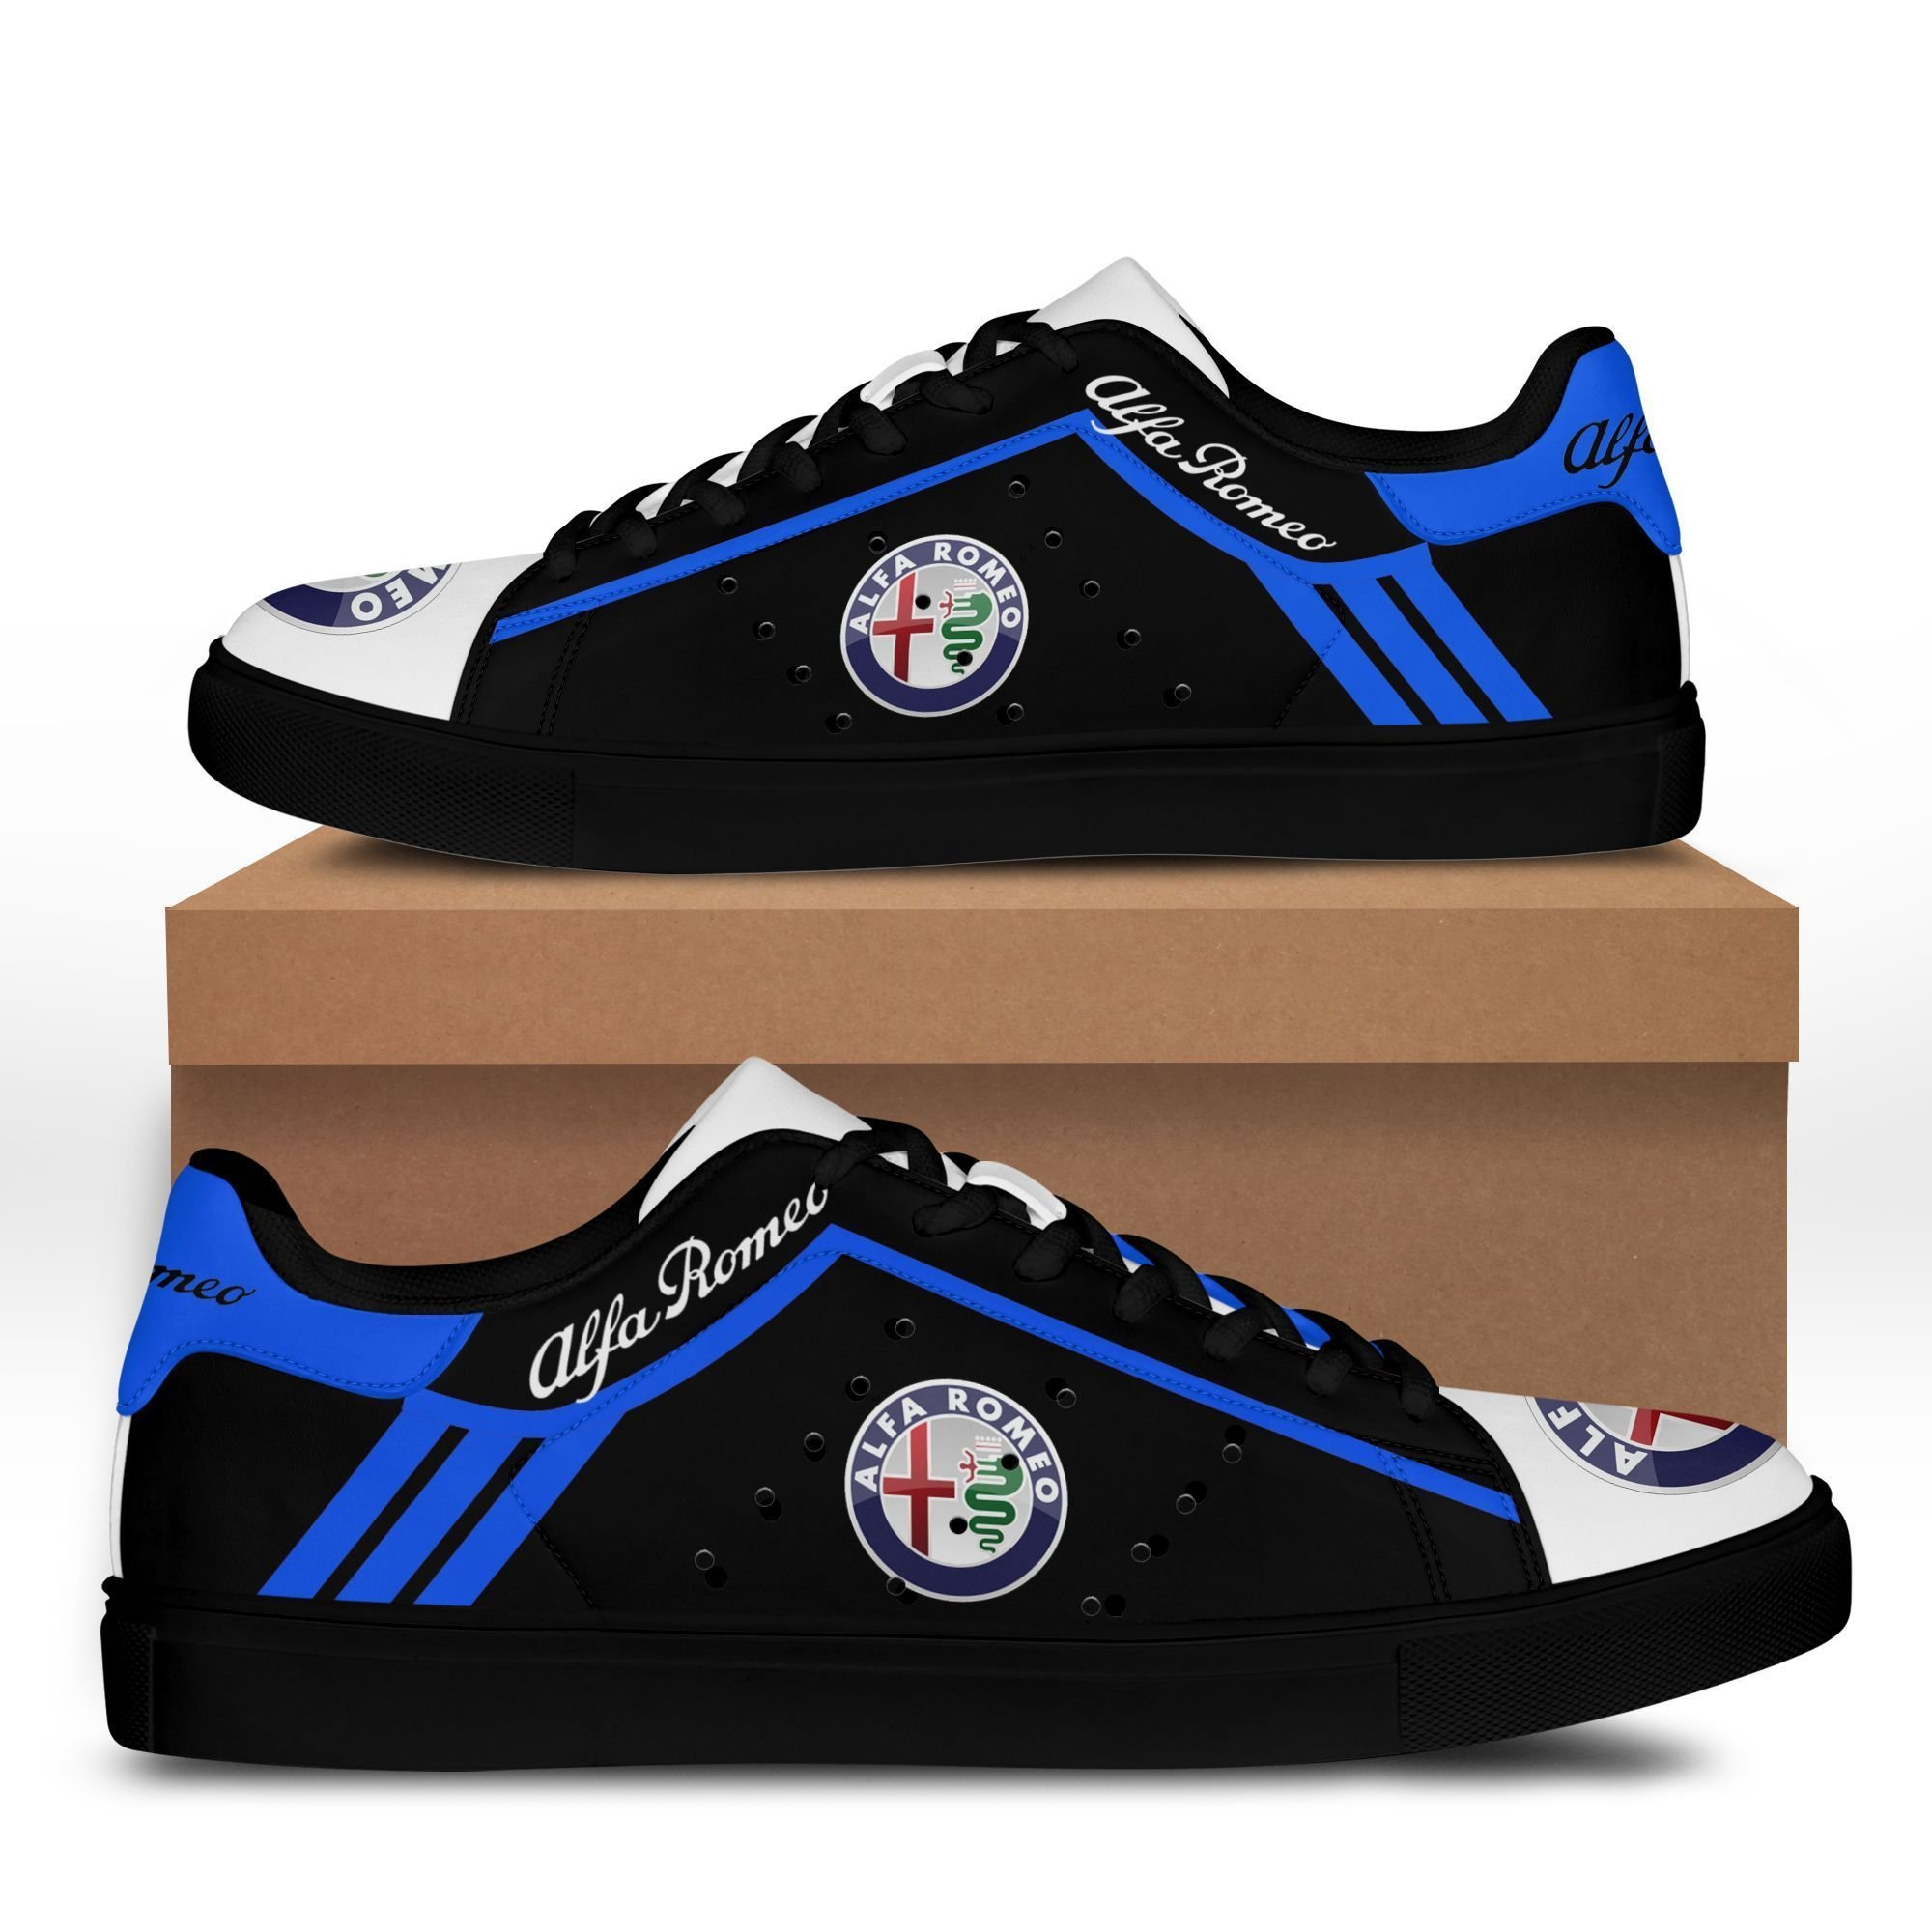 Alfa Romeo Blue lines in Black Stan Smith Shoes